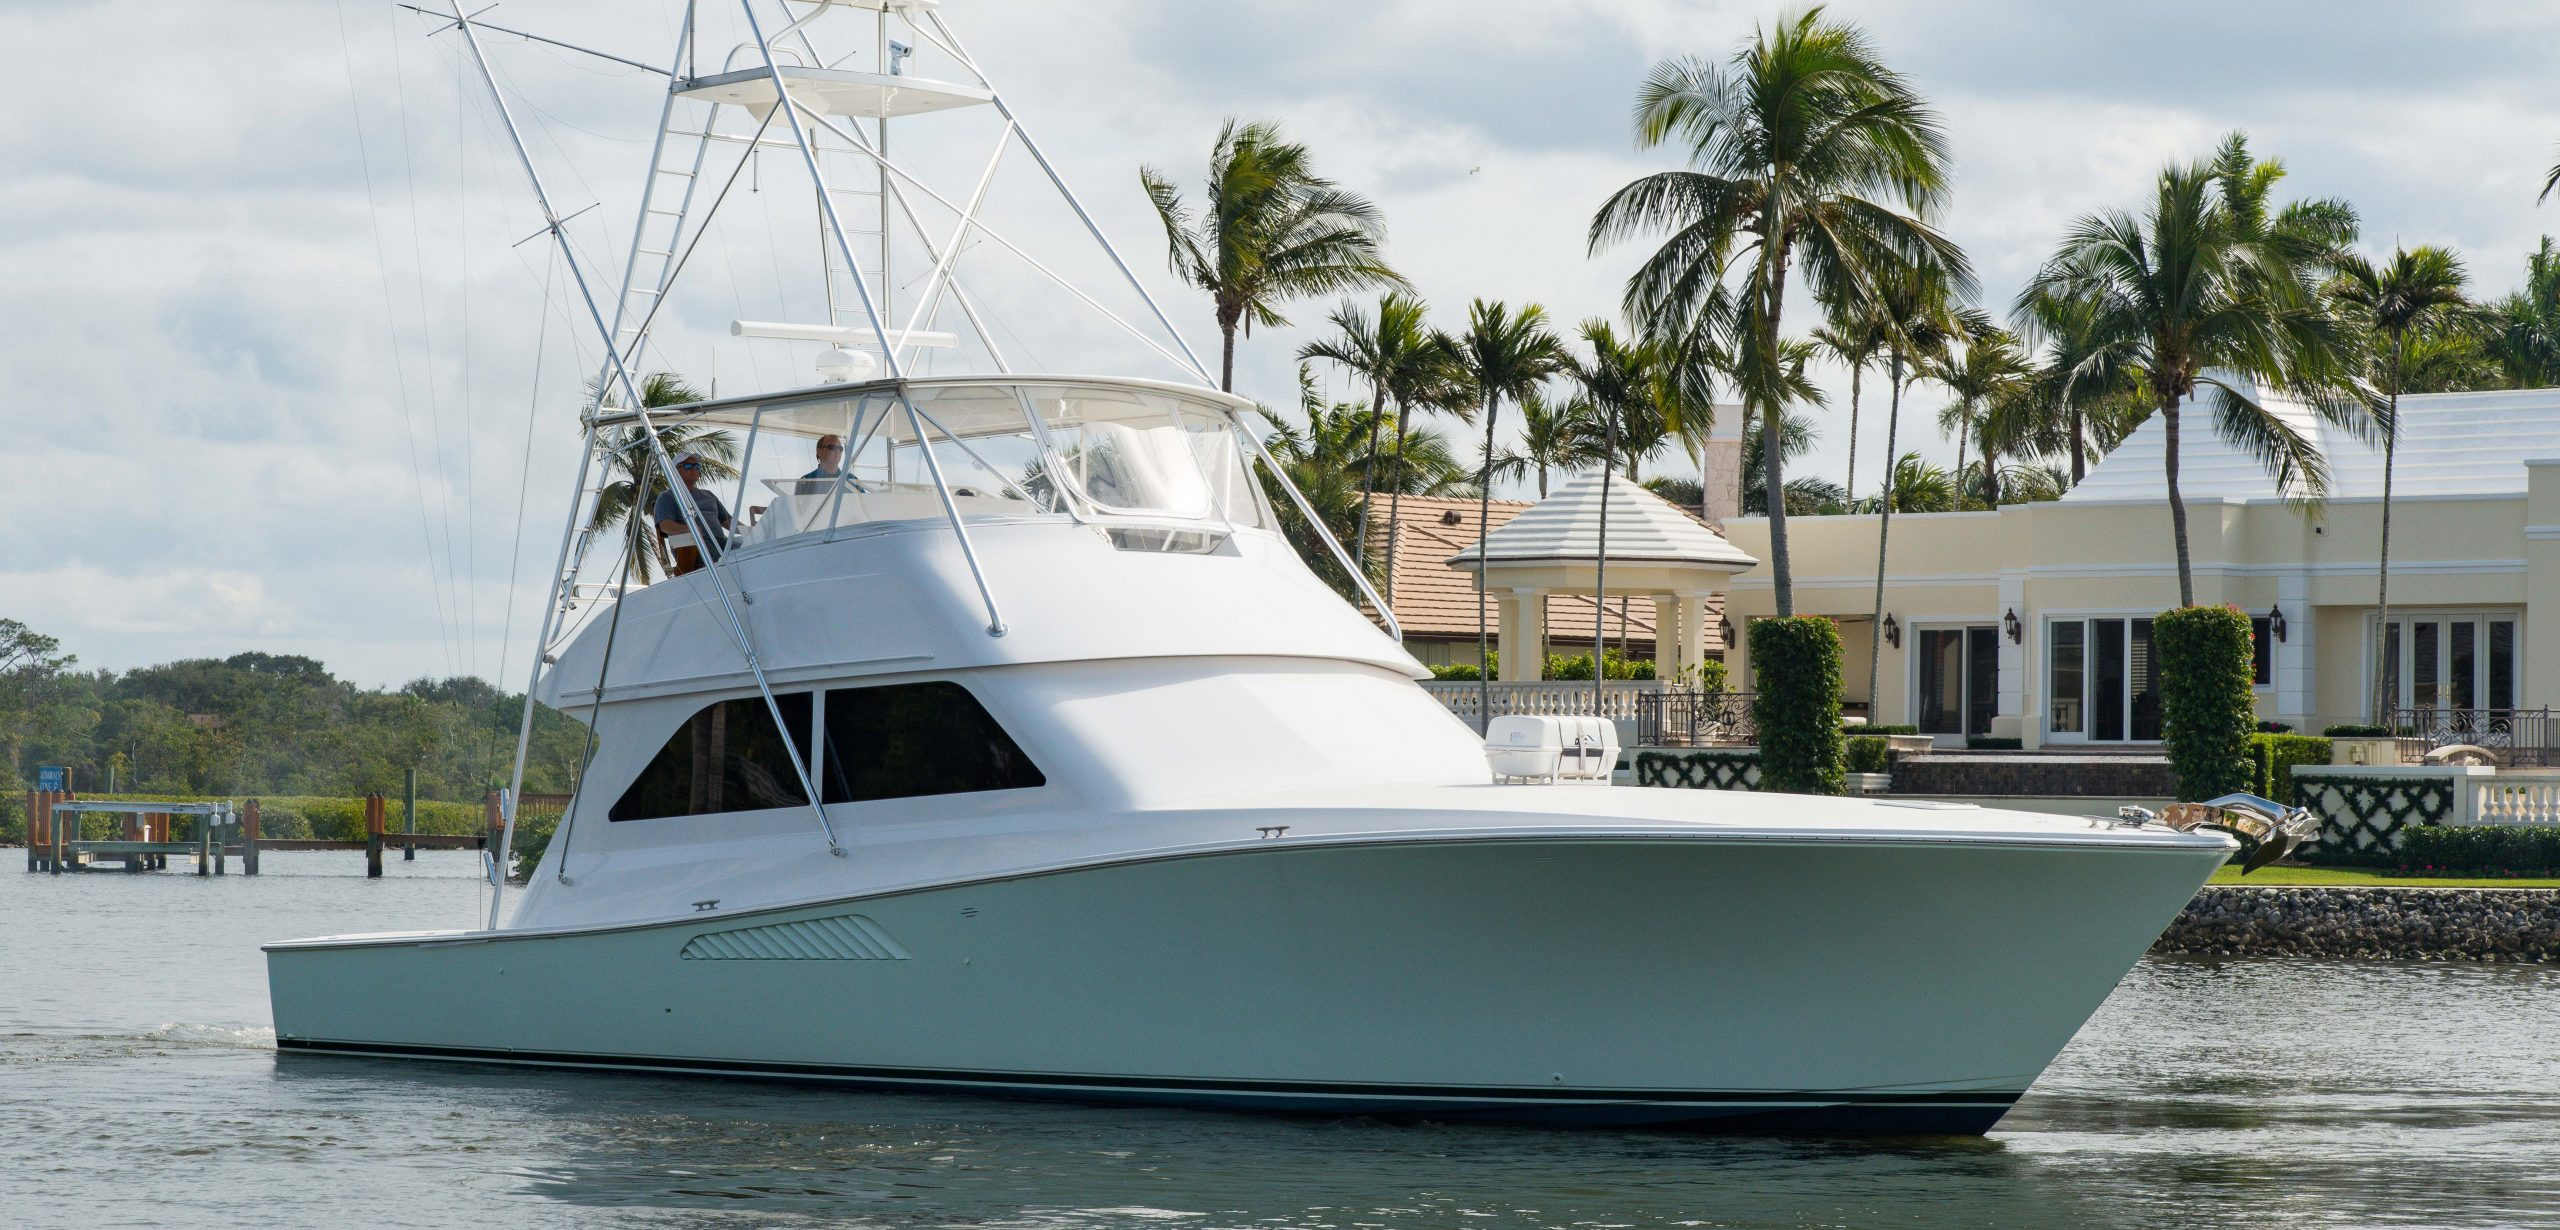 Unleashed | 55 ft. Viking | Captain J Fishing Charters | Tavernier & Islamorada